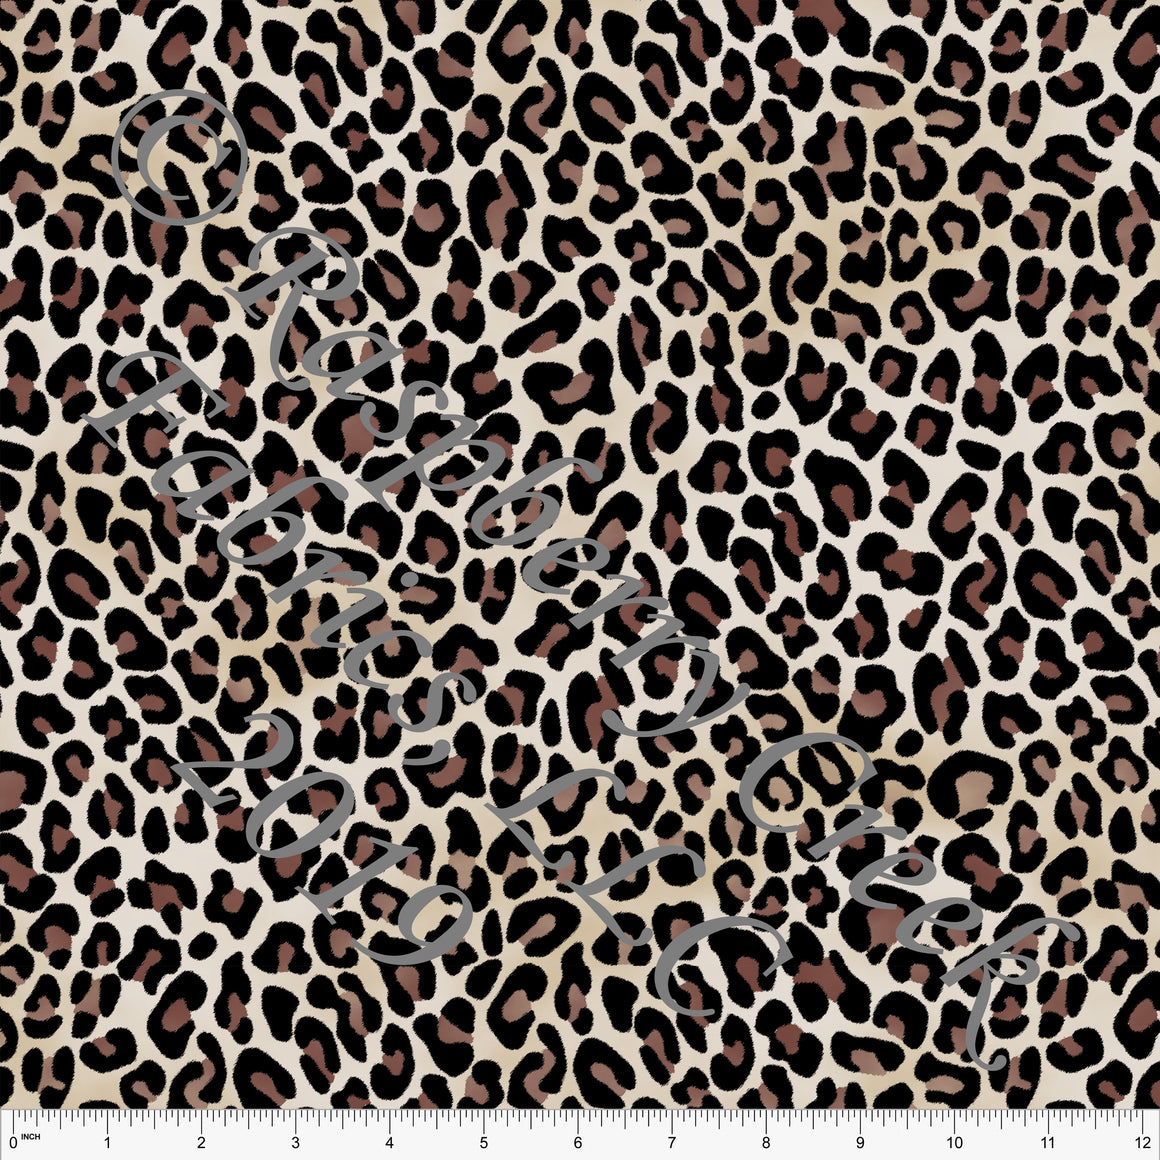 Black Brown Tan and Cream Leopard Print Stretch Crepe, CLUB Fabrics, 1 Yard - Raspberry Creek Fabrics